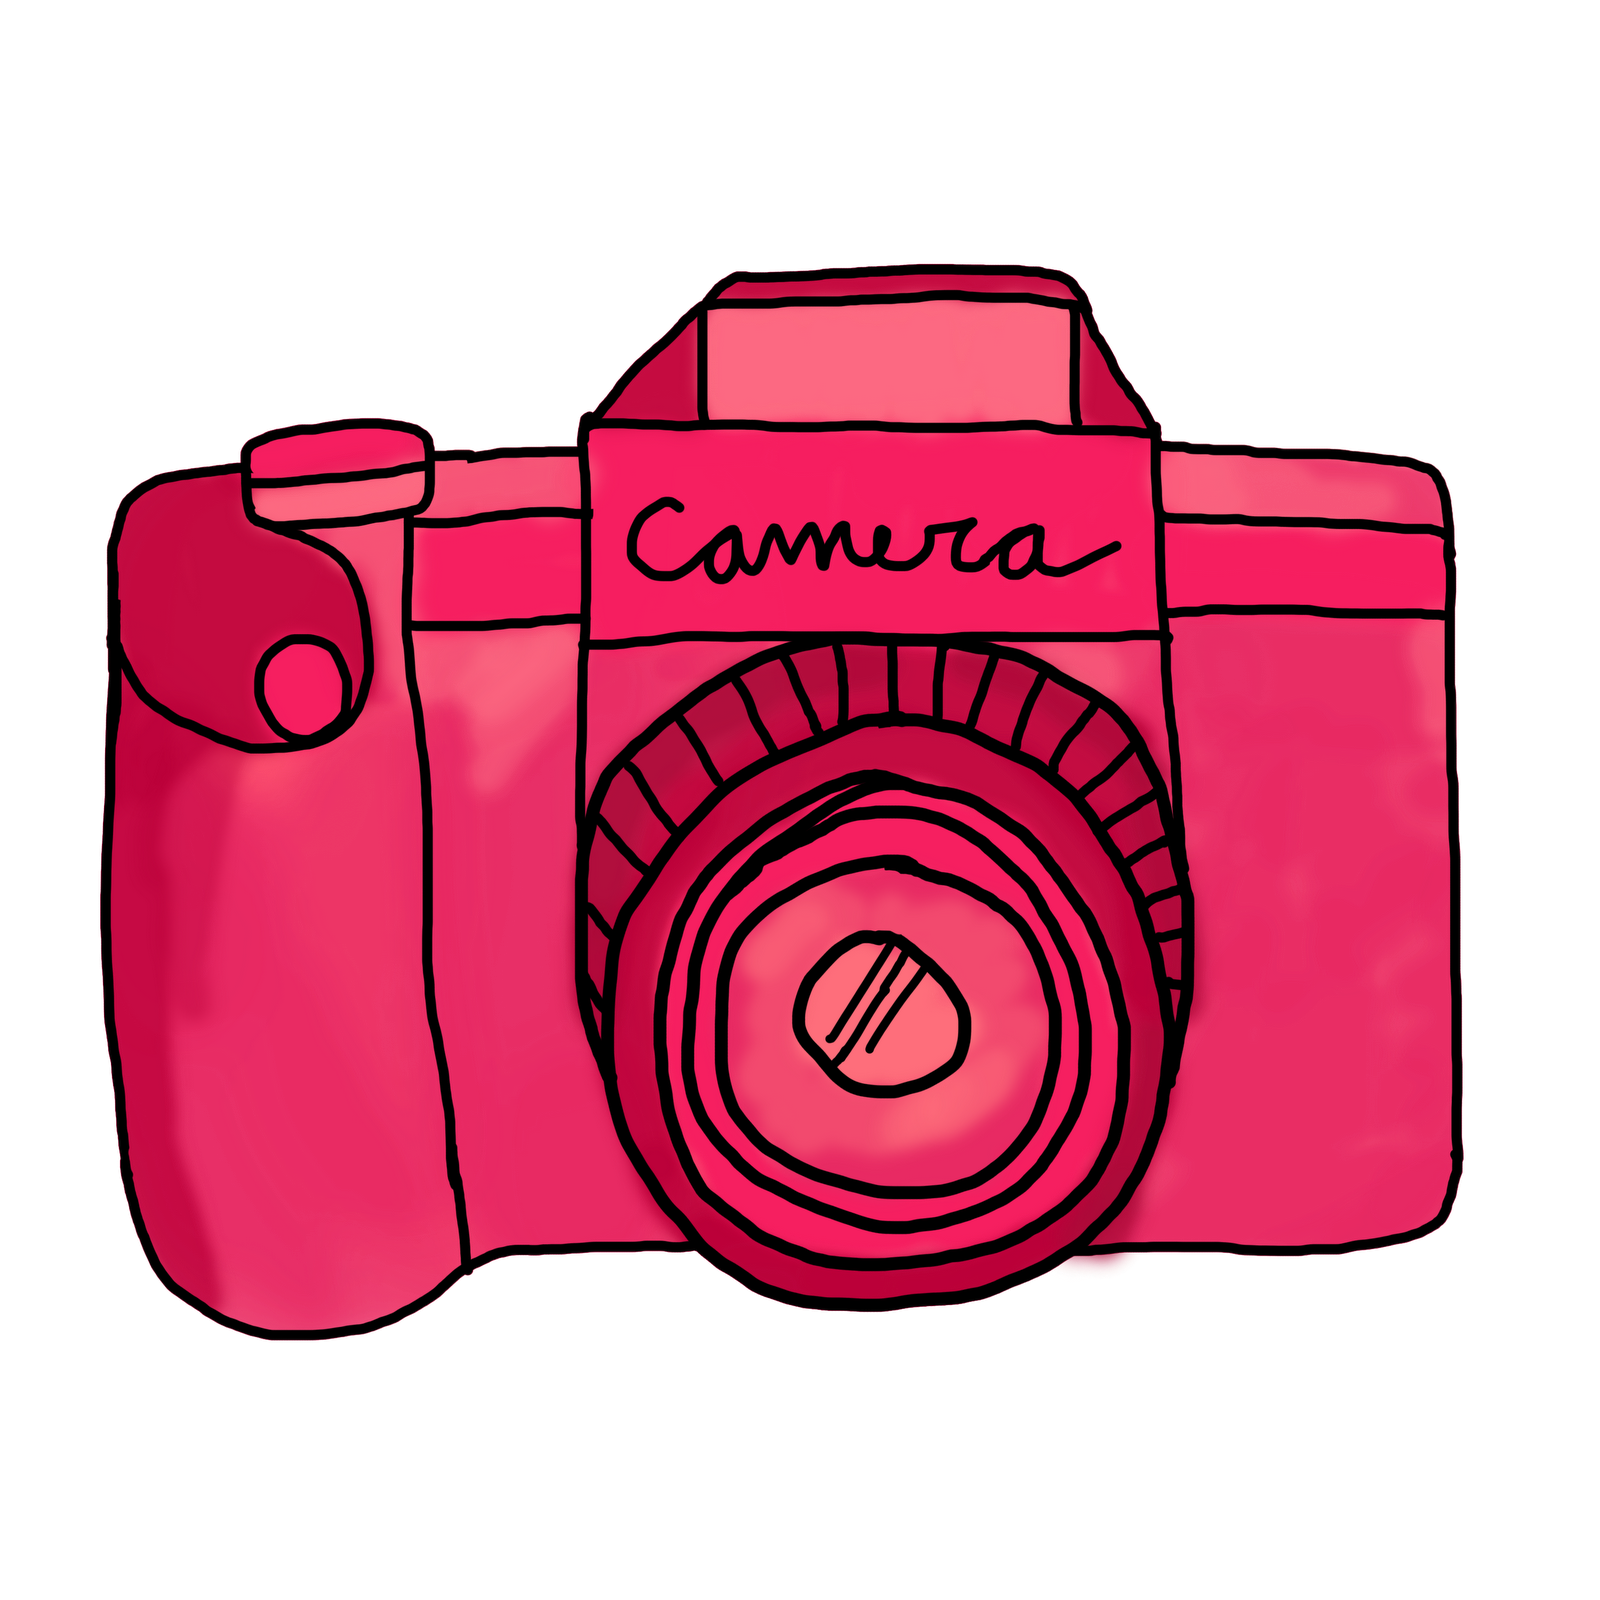 Png vintage transparent images. Yearbook clipart camera nikon